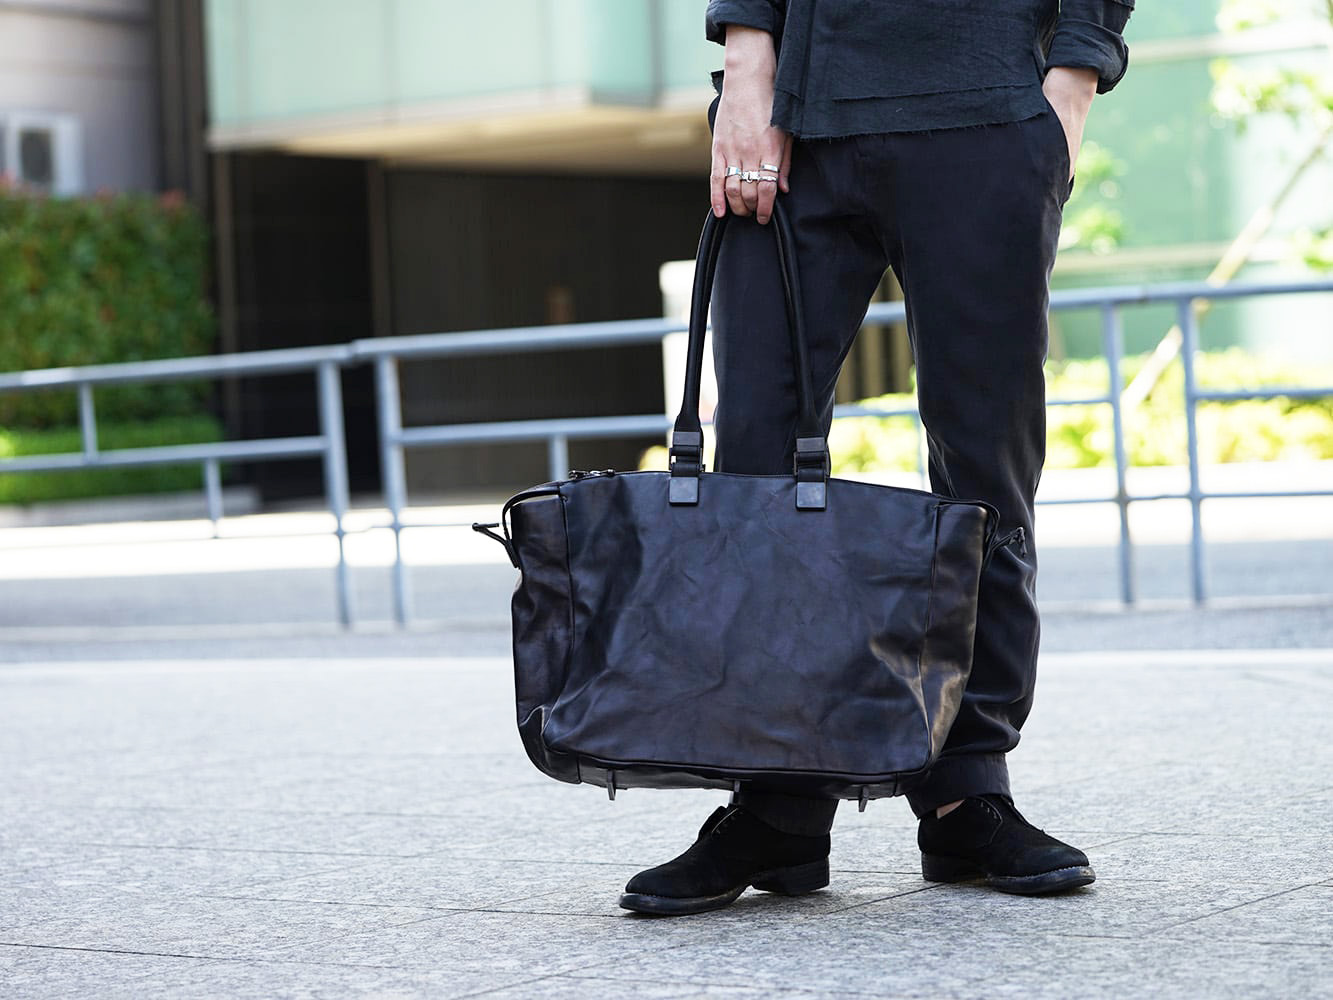 iolom Recommended Bag